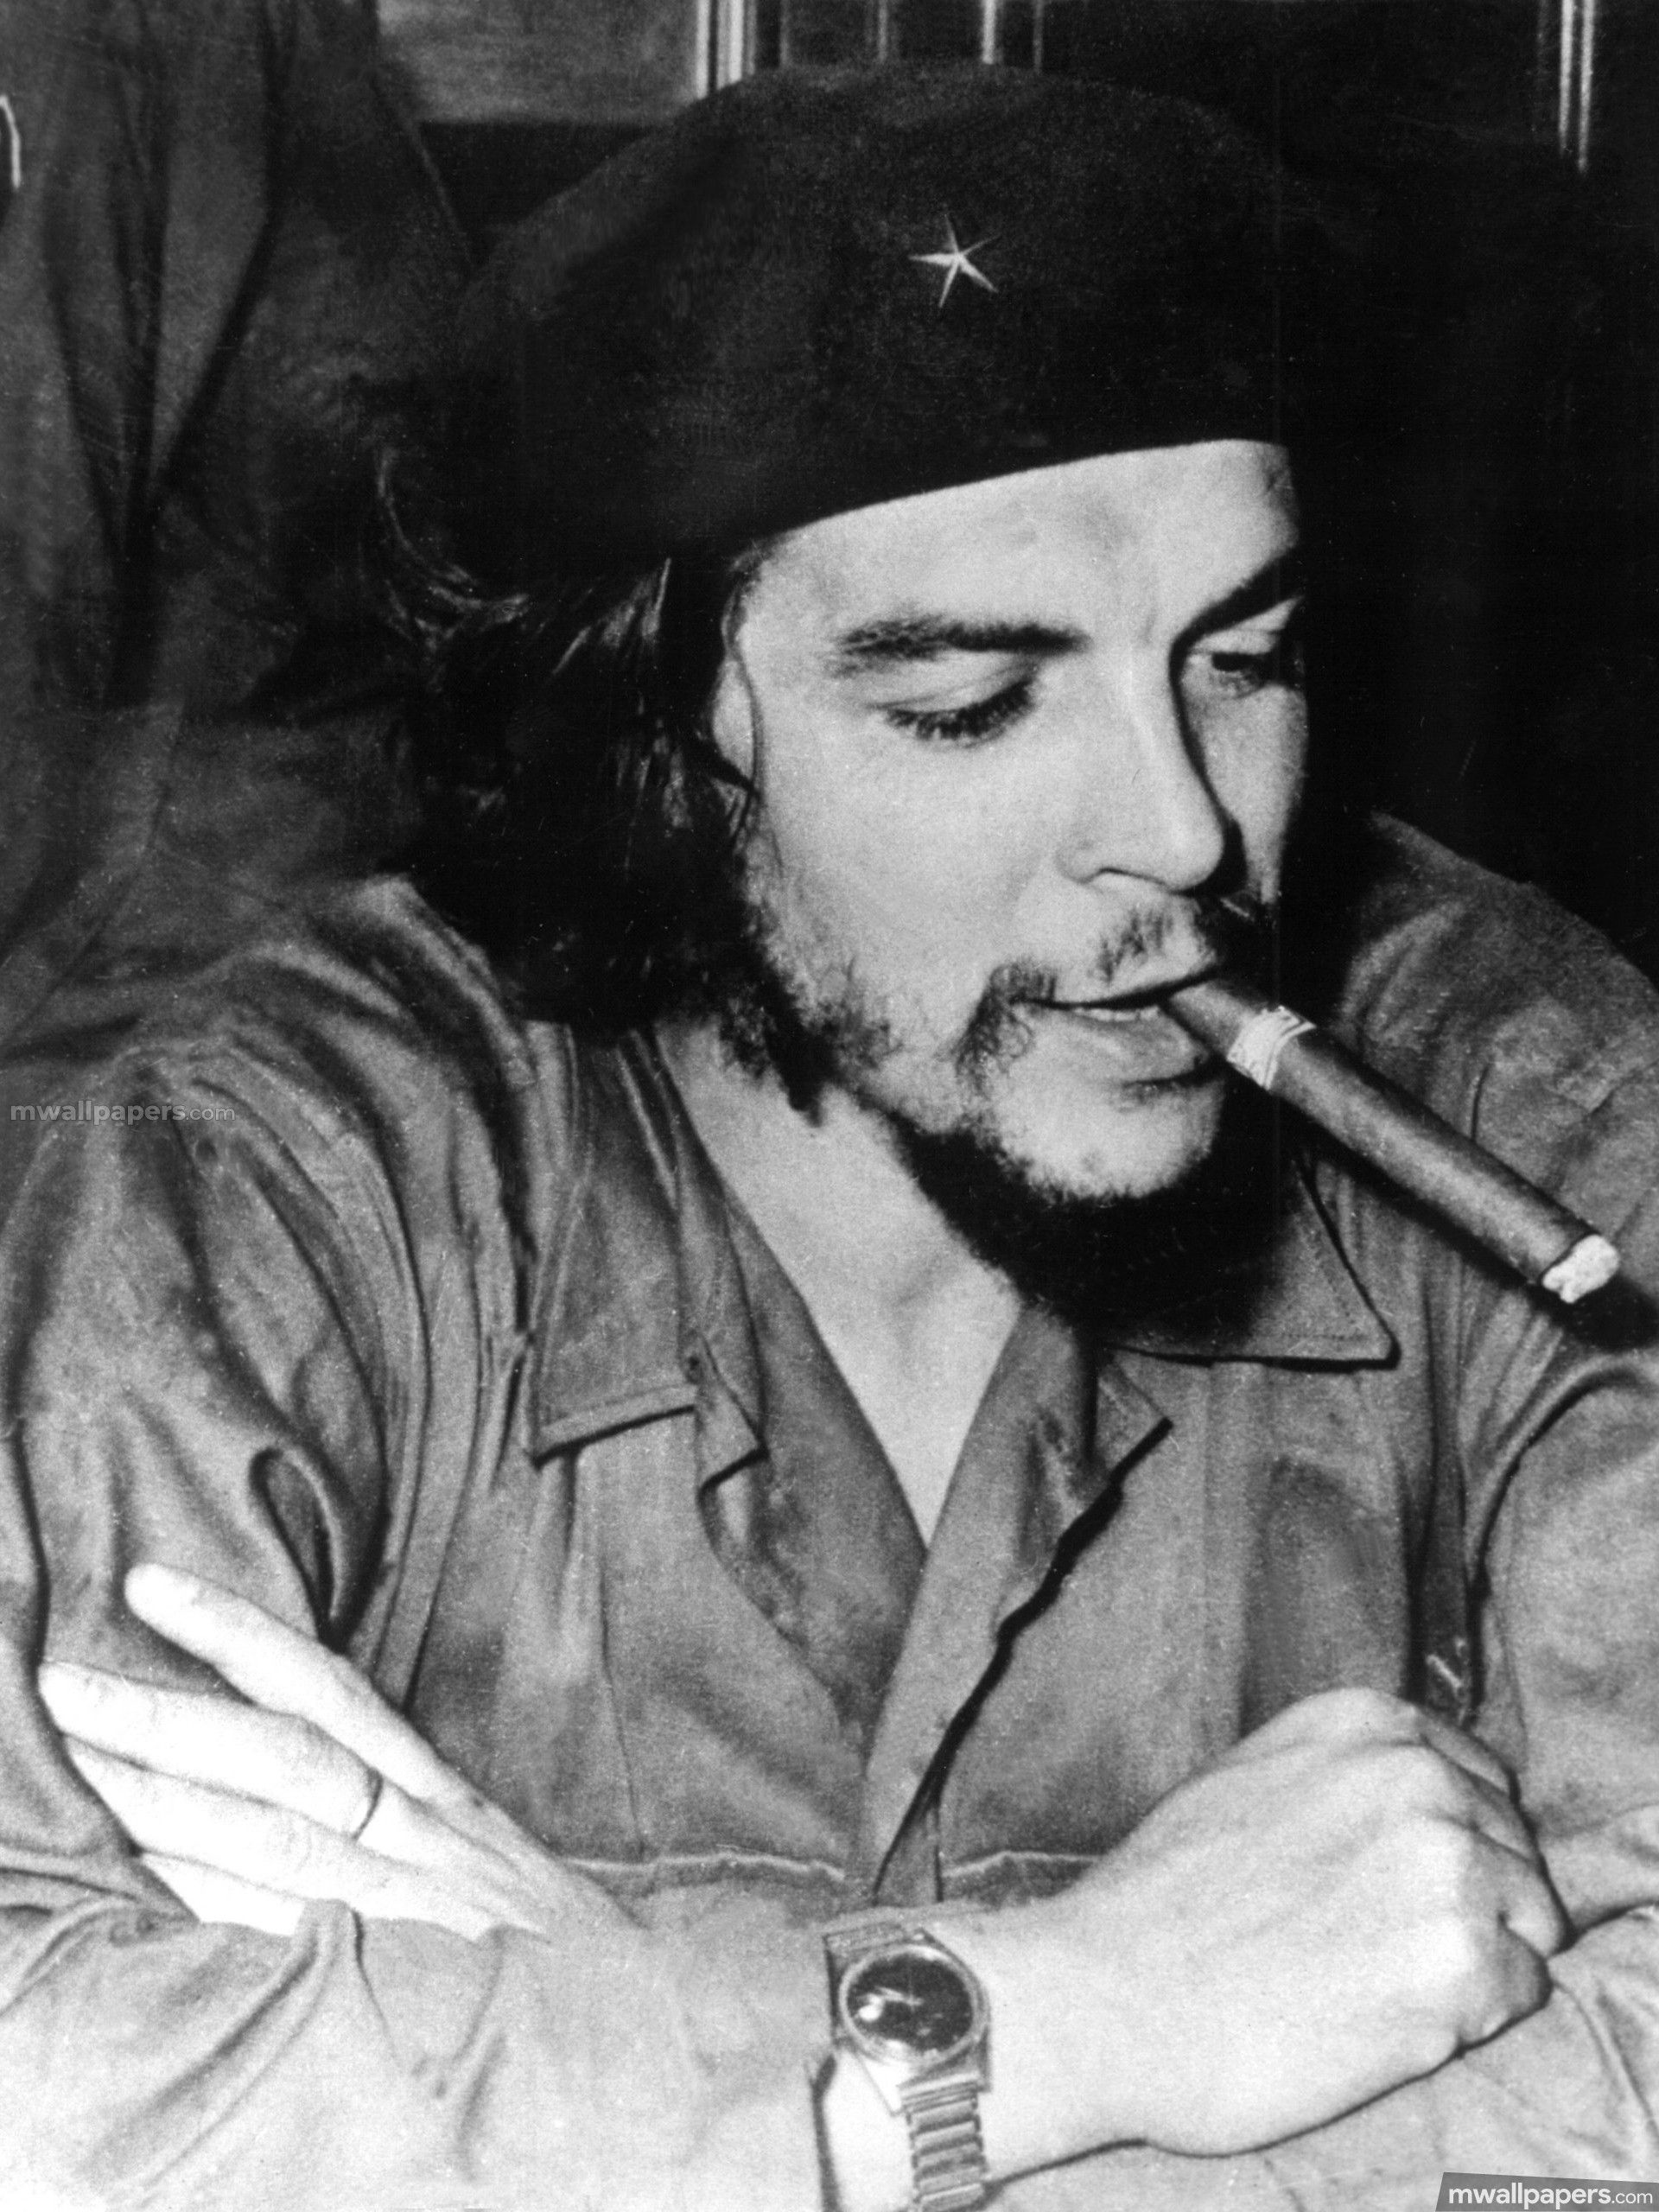 Che Guevara Wallpapers HD Best HD Photos (1080p) - #12752 #cheguevara #che #hdphotos #wallpapers #hdimages #cheguevara